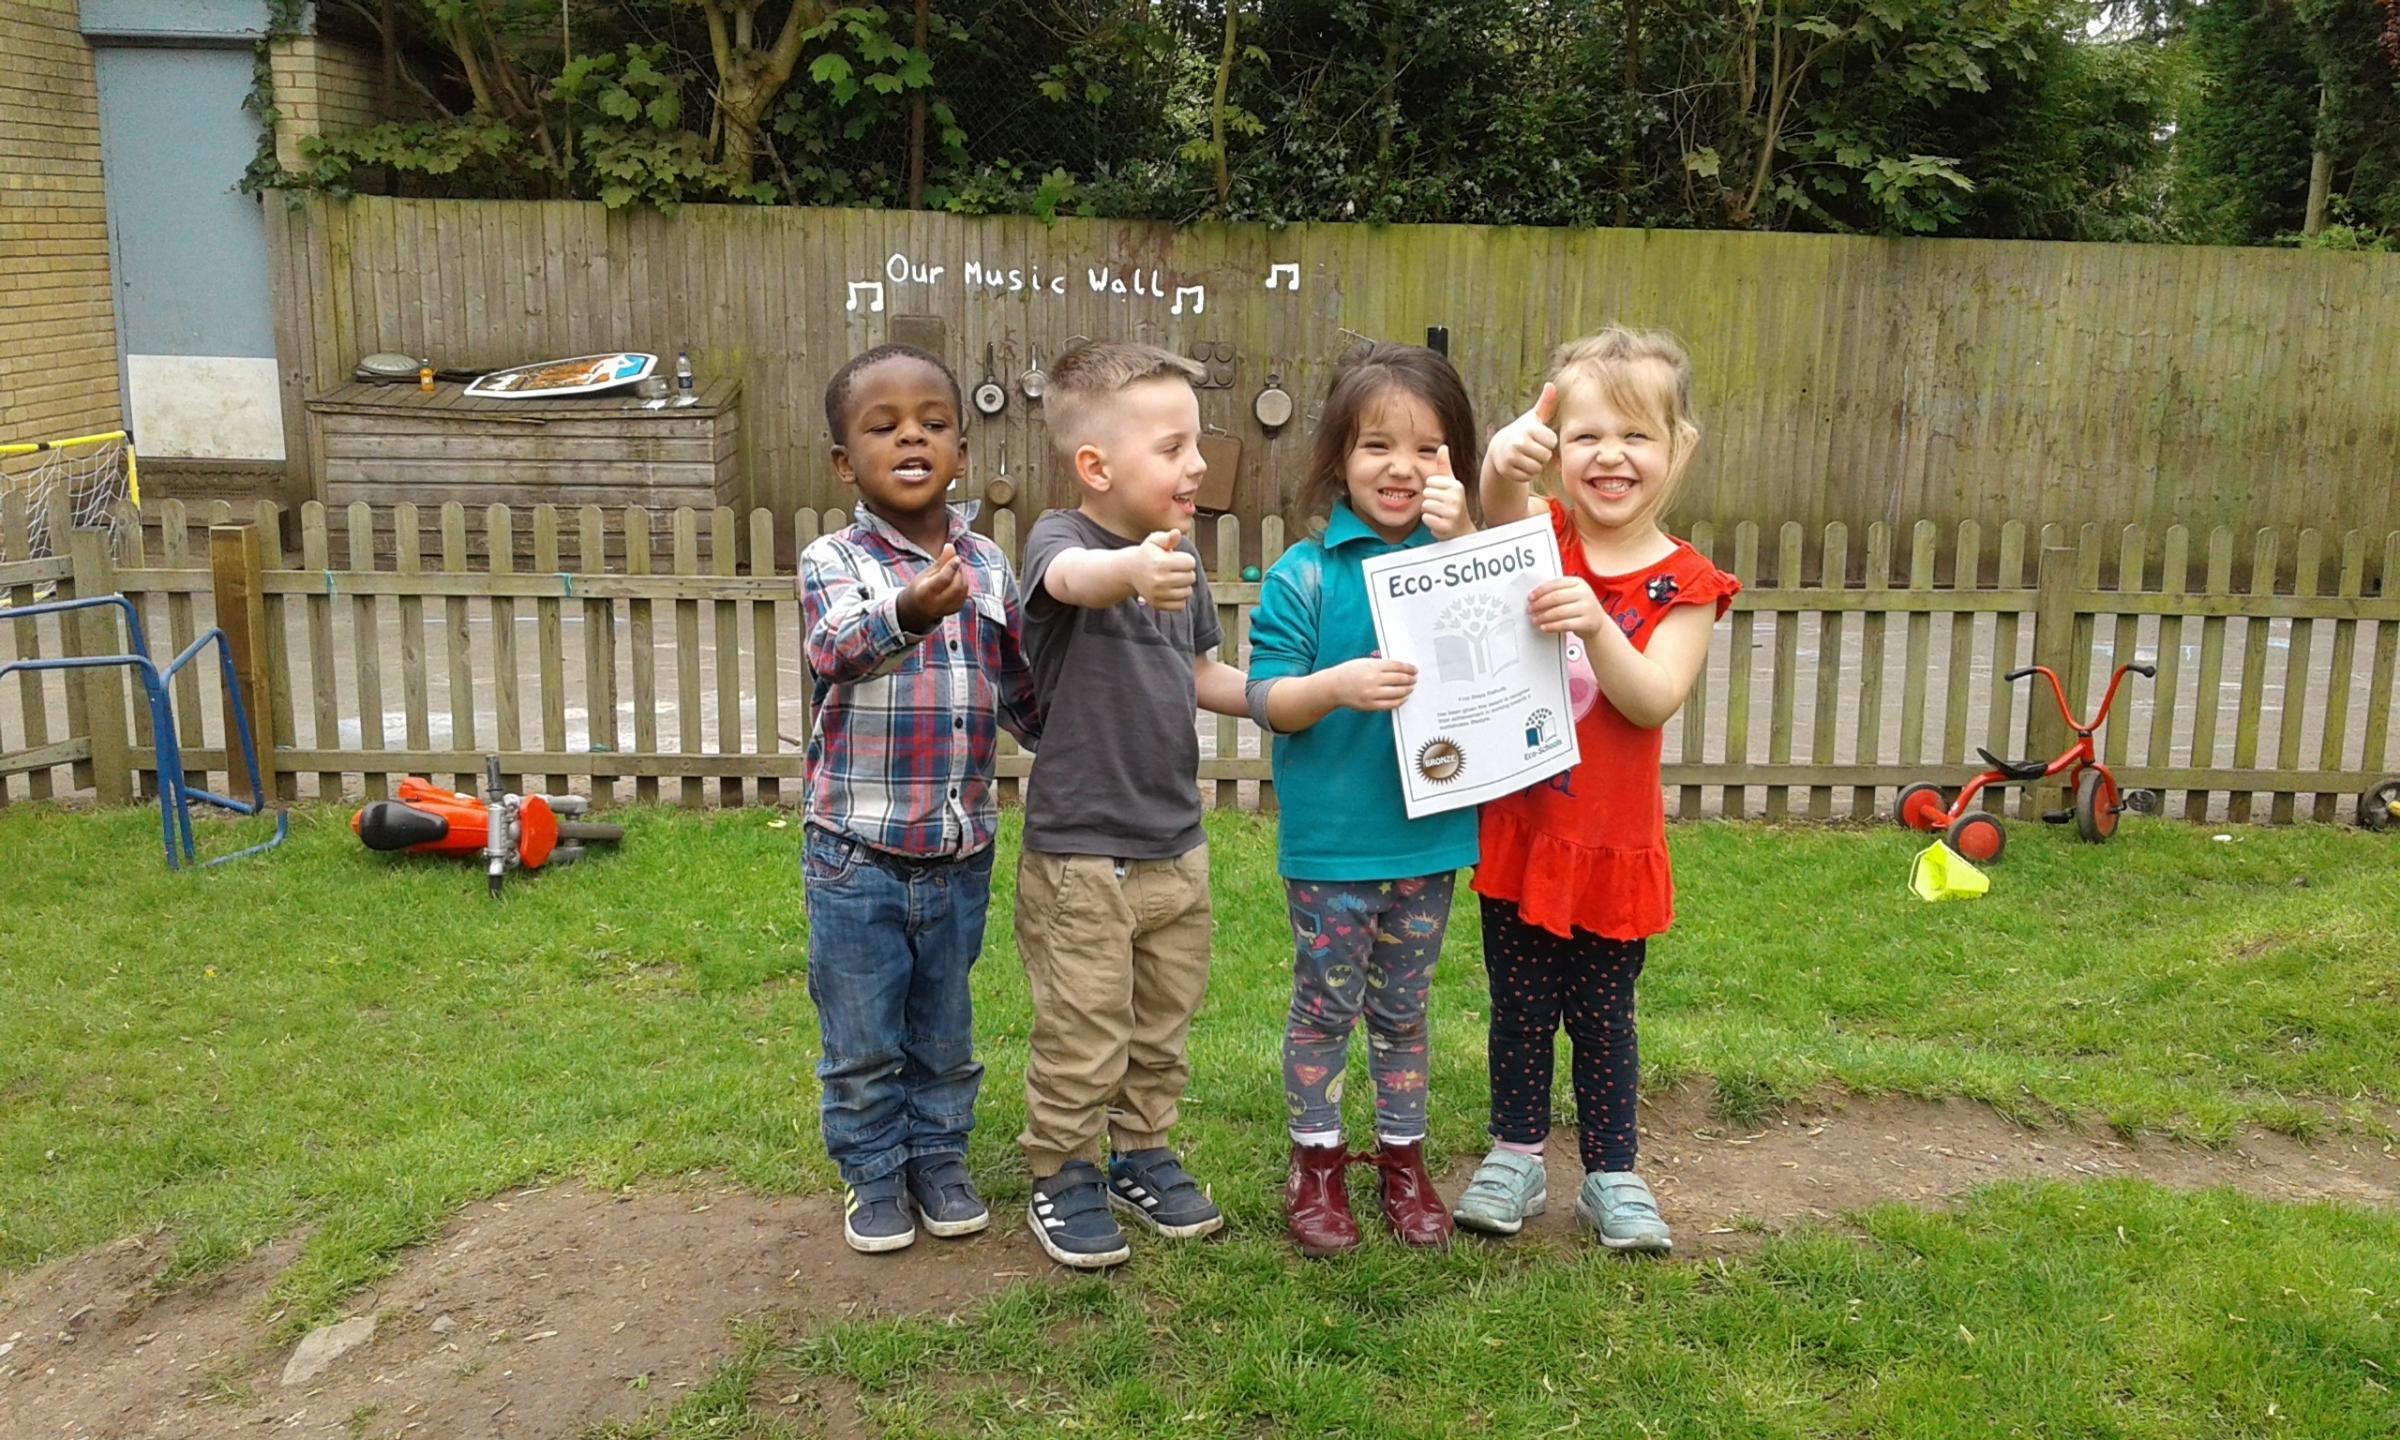 Youngsters celebrate eco-school status